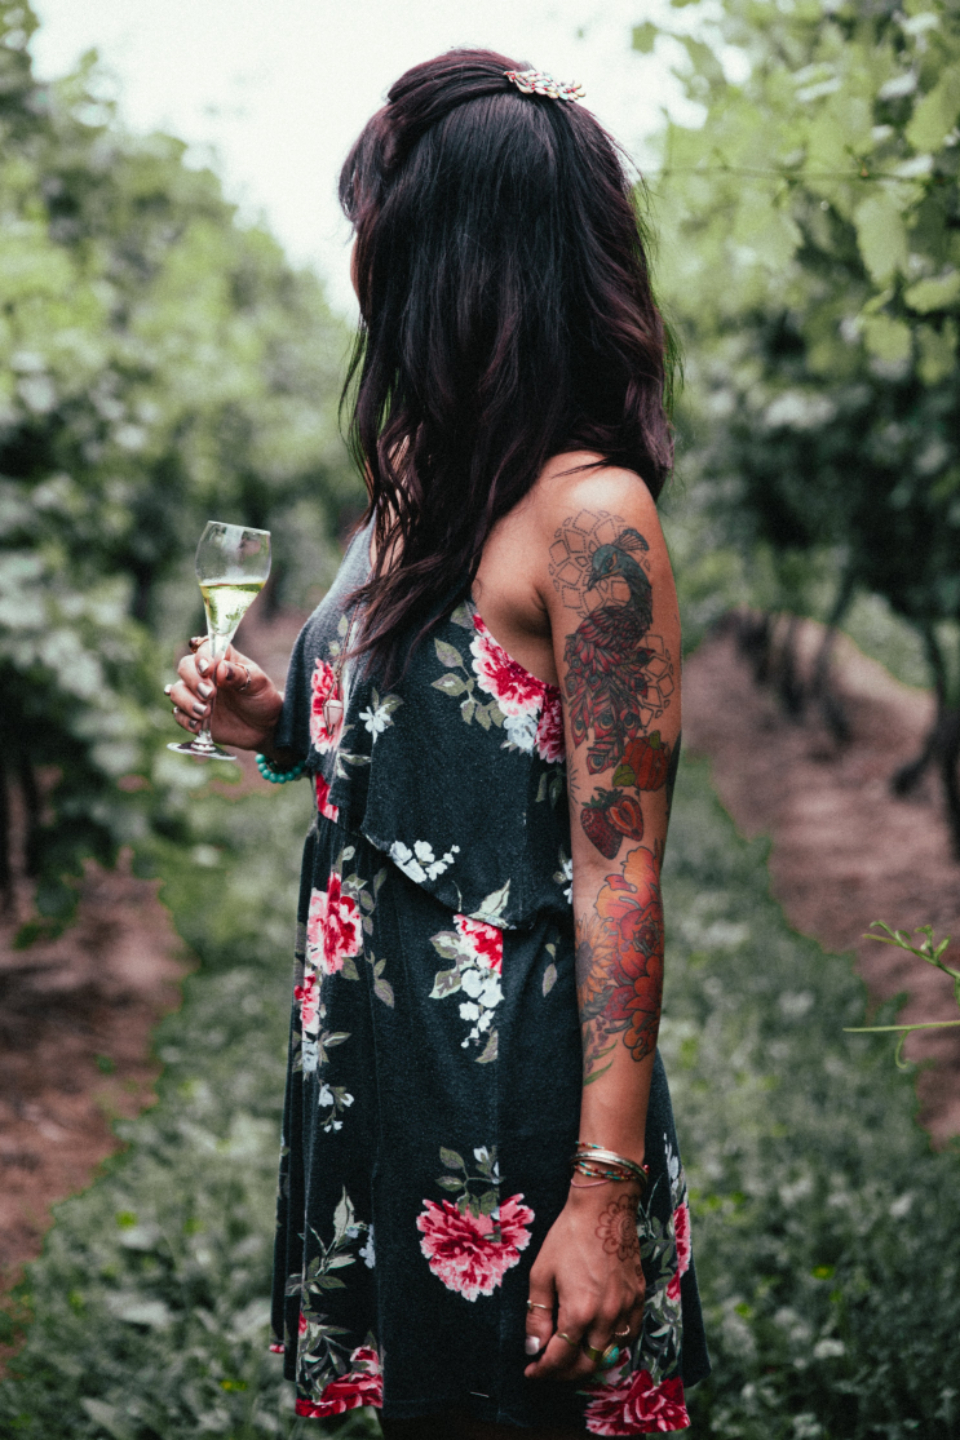 woman wine vineyard